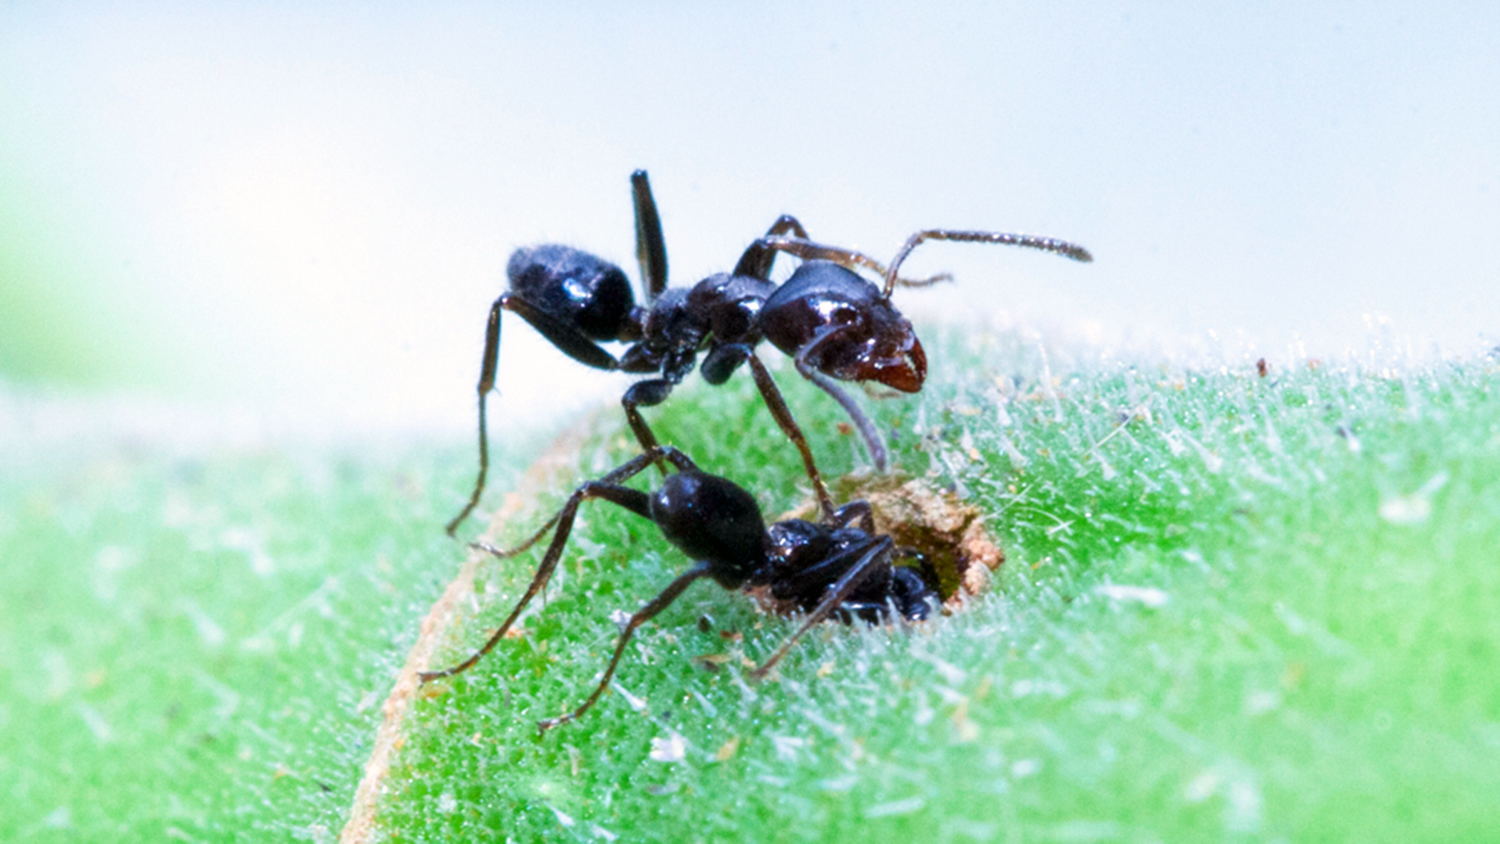 Azteca ants entering a hole in a plant surface